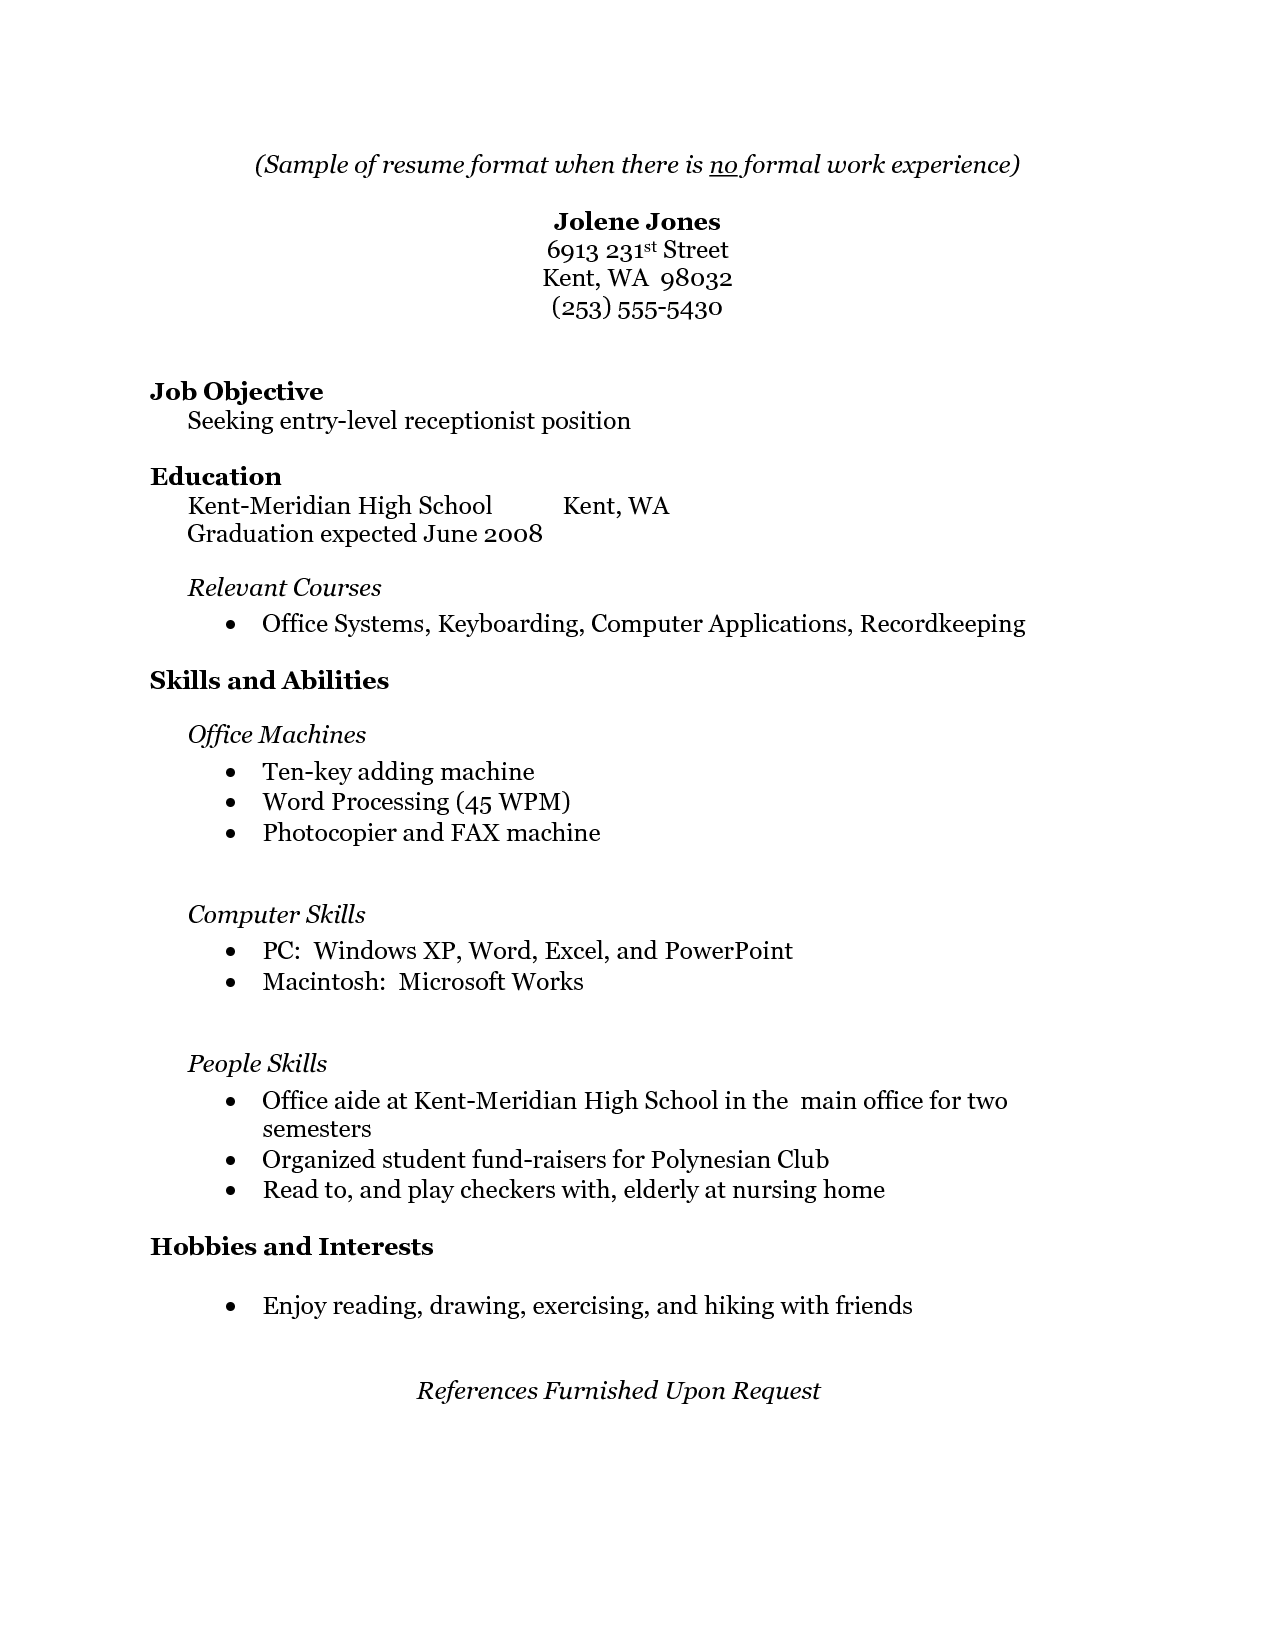 Resume Templates With No Work Experience - Resume Sample